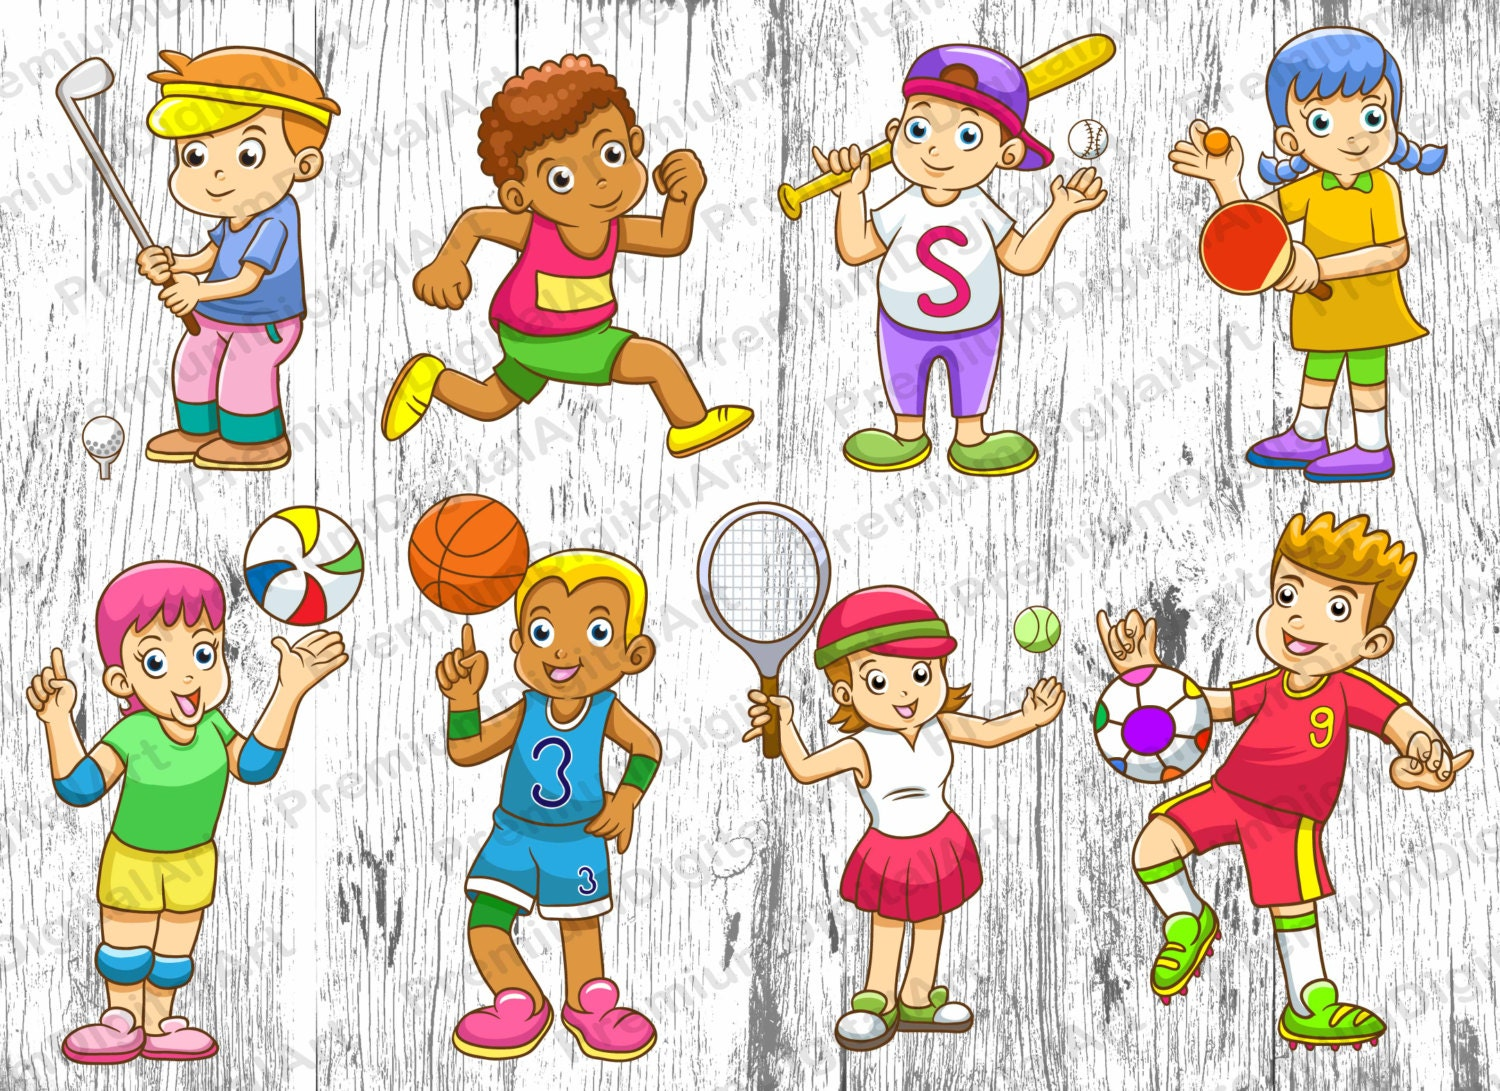 Kids Sports Cartoon: 8 Cartoon Sport Kids Clipart Kids Clipart Sport